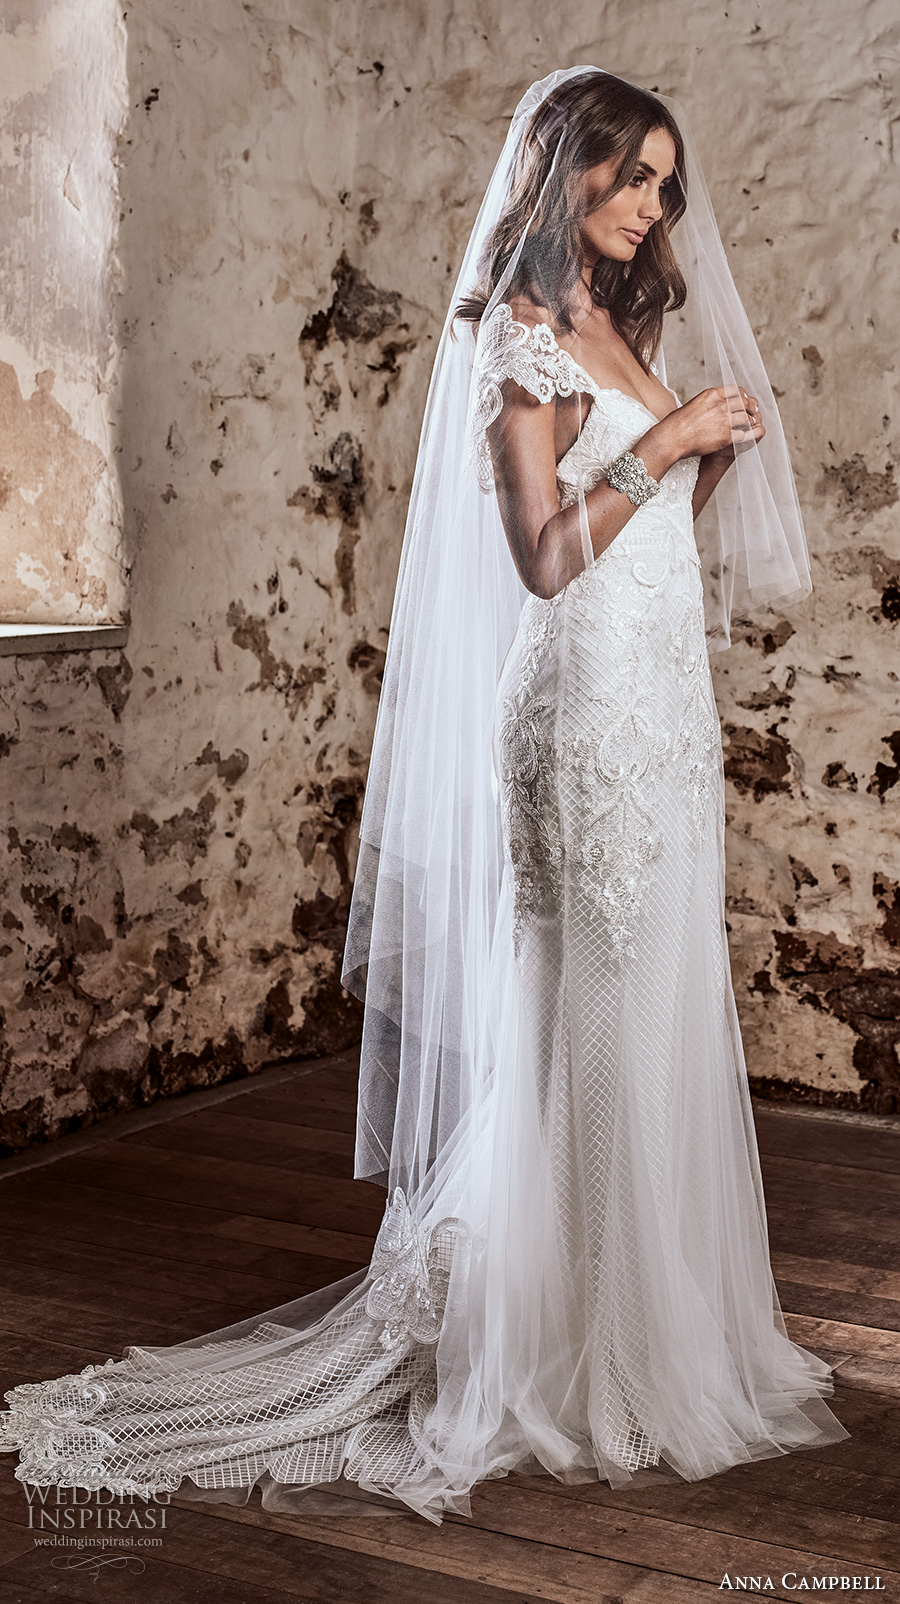 anna campbell 2018 bridal cap sleeves sweetheart neckline heavily embellished bodice romantic fit and flare wedding dress open v back sweep train (4) sdv